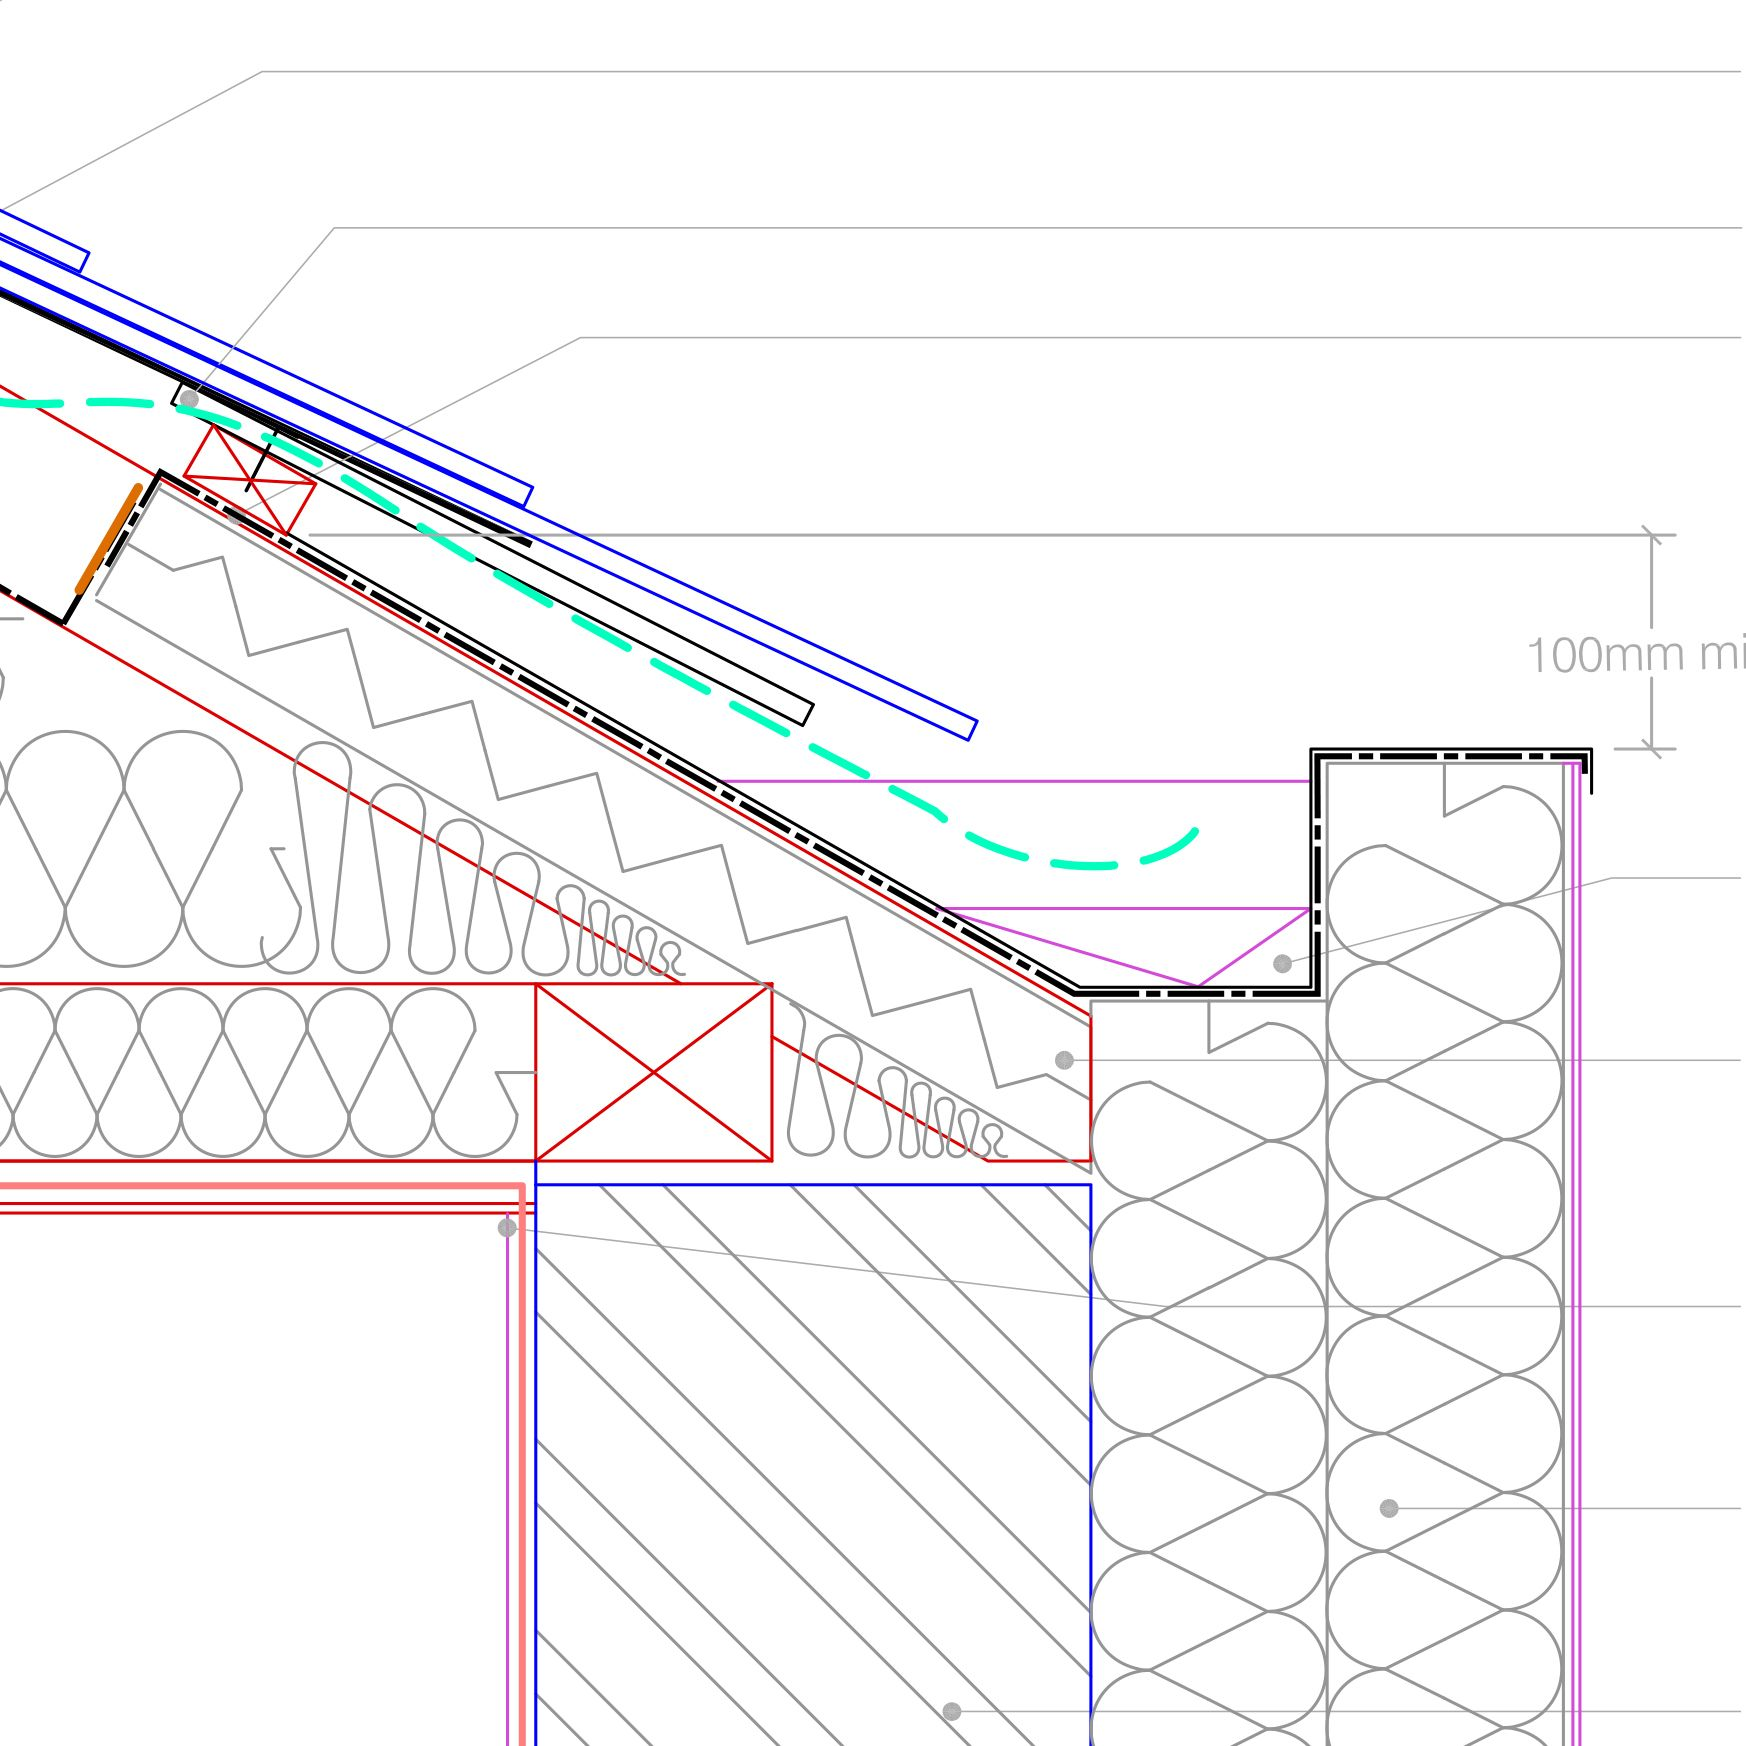 Auto cad drawings flat roof with parapet wall detail - Ewi To Clipped Eaves With Hidden Gutter Retrofit Pattern Book